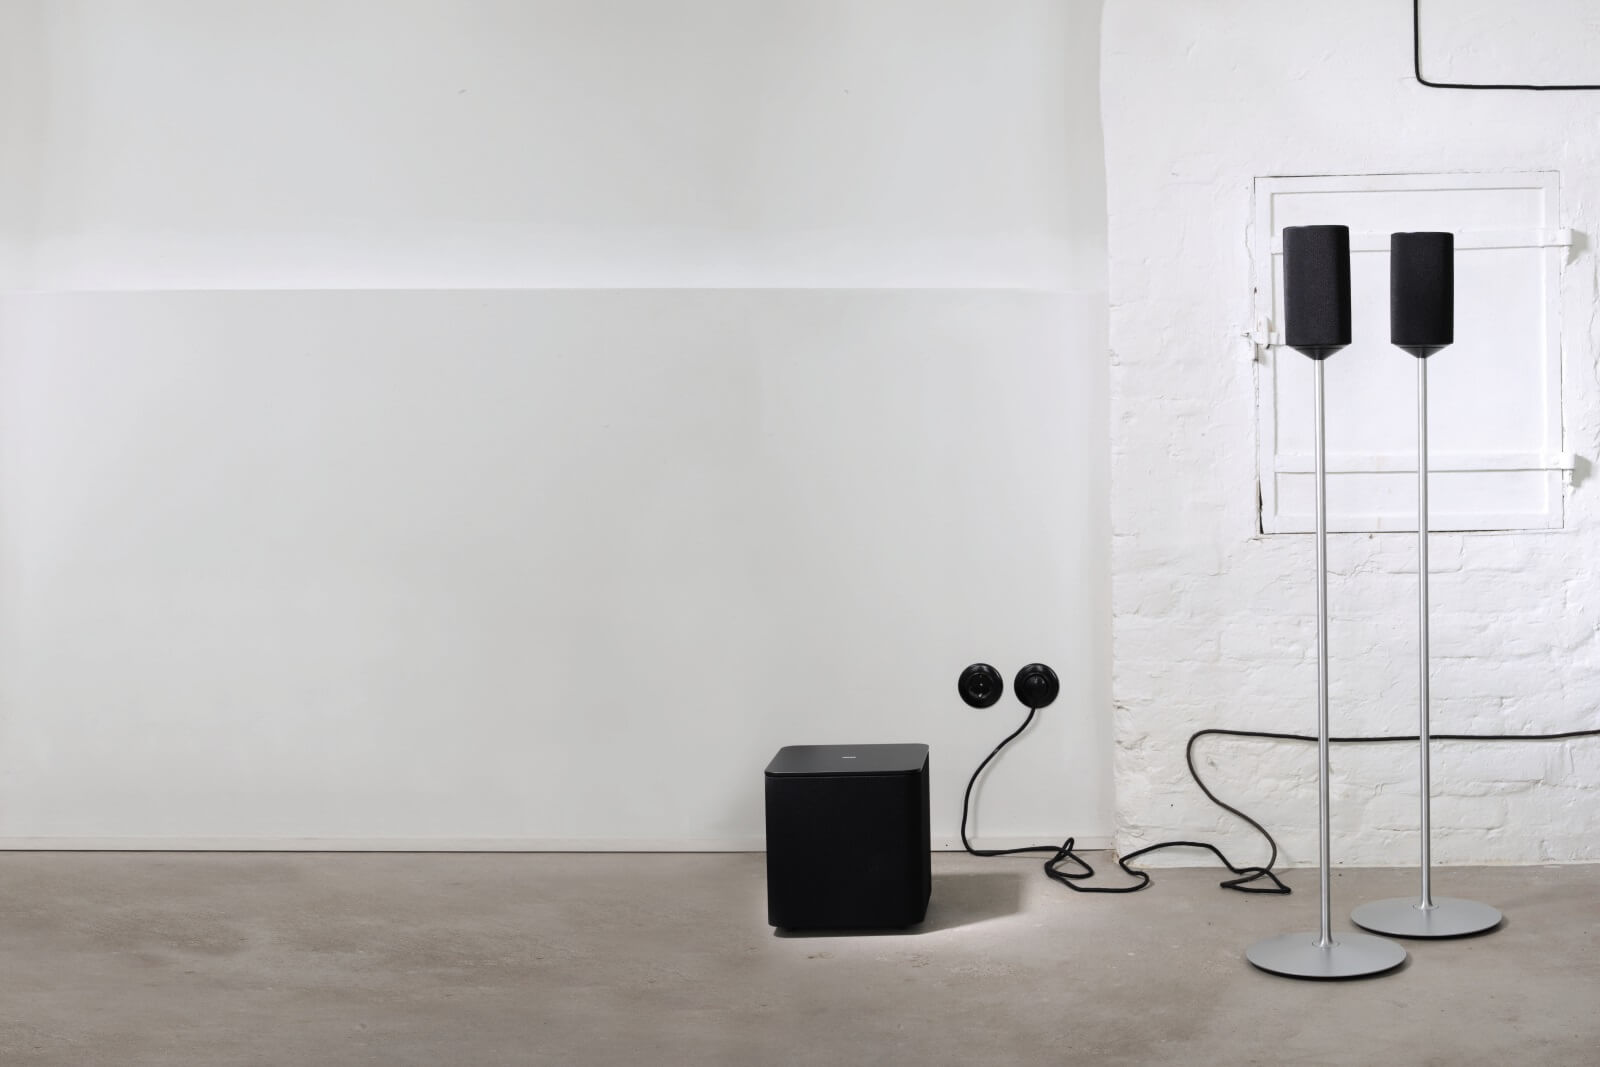 klang 1 speaker and subwoofer in black